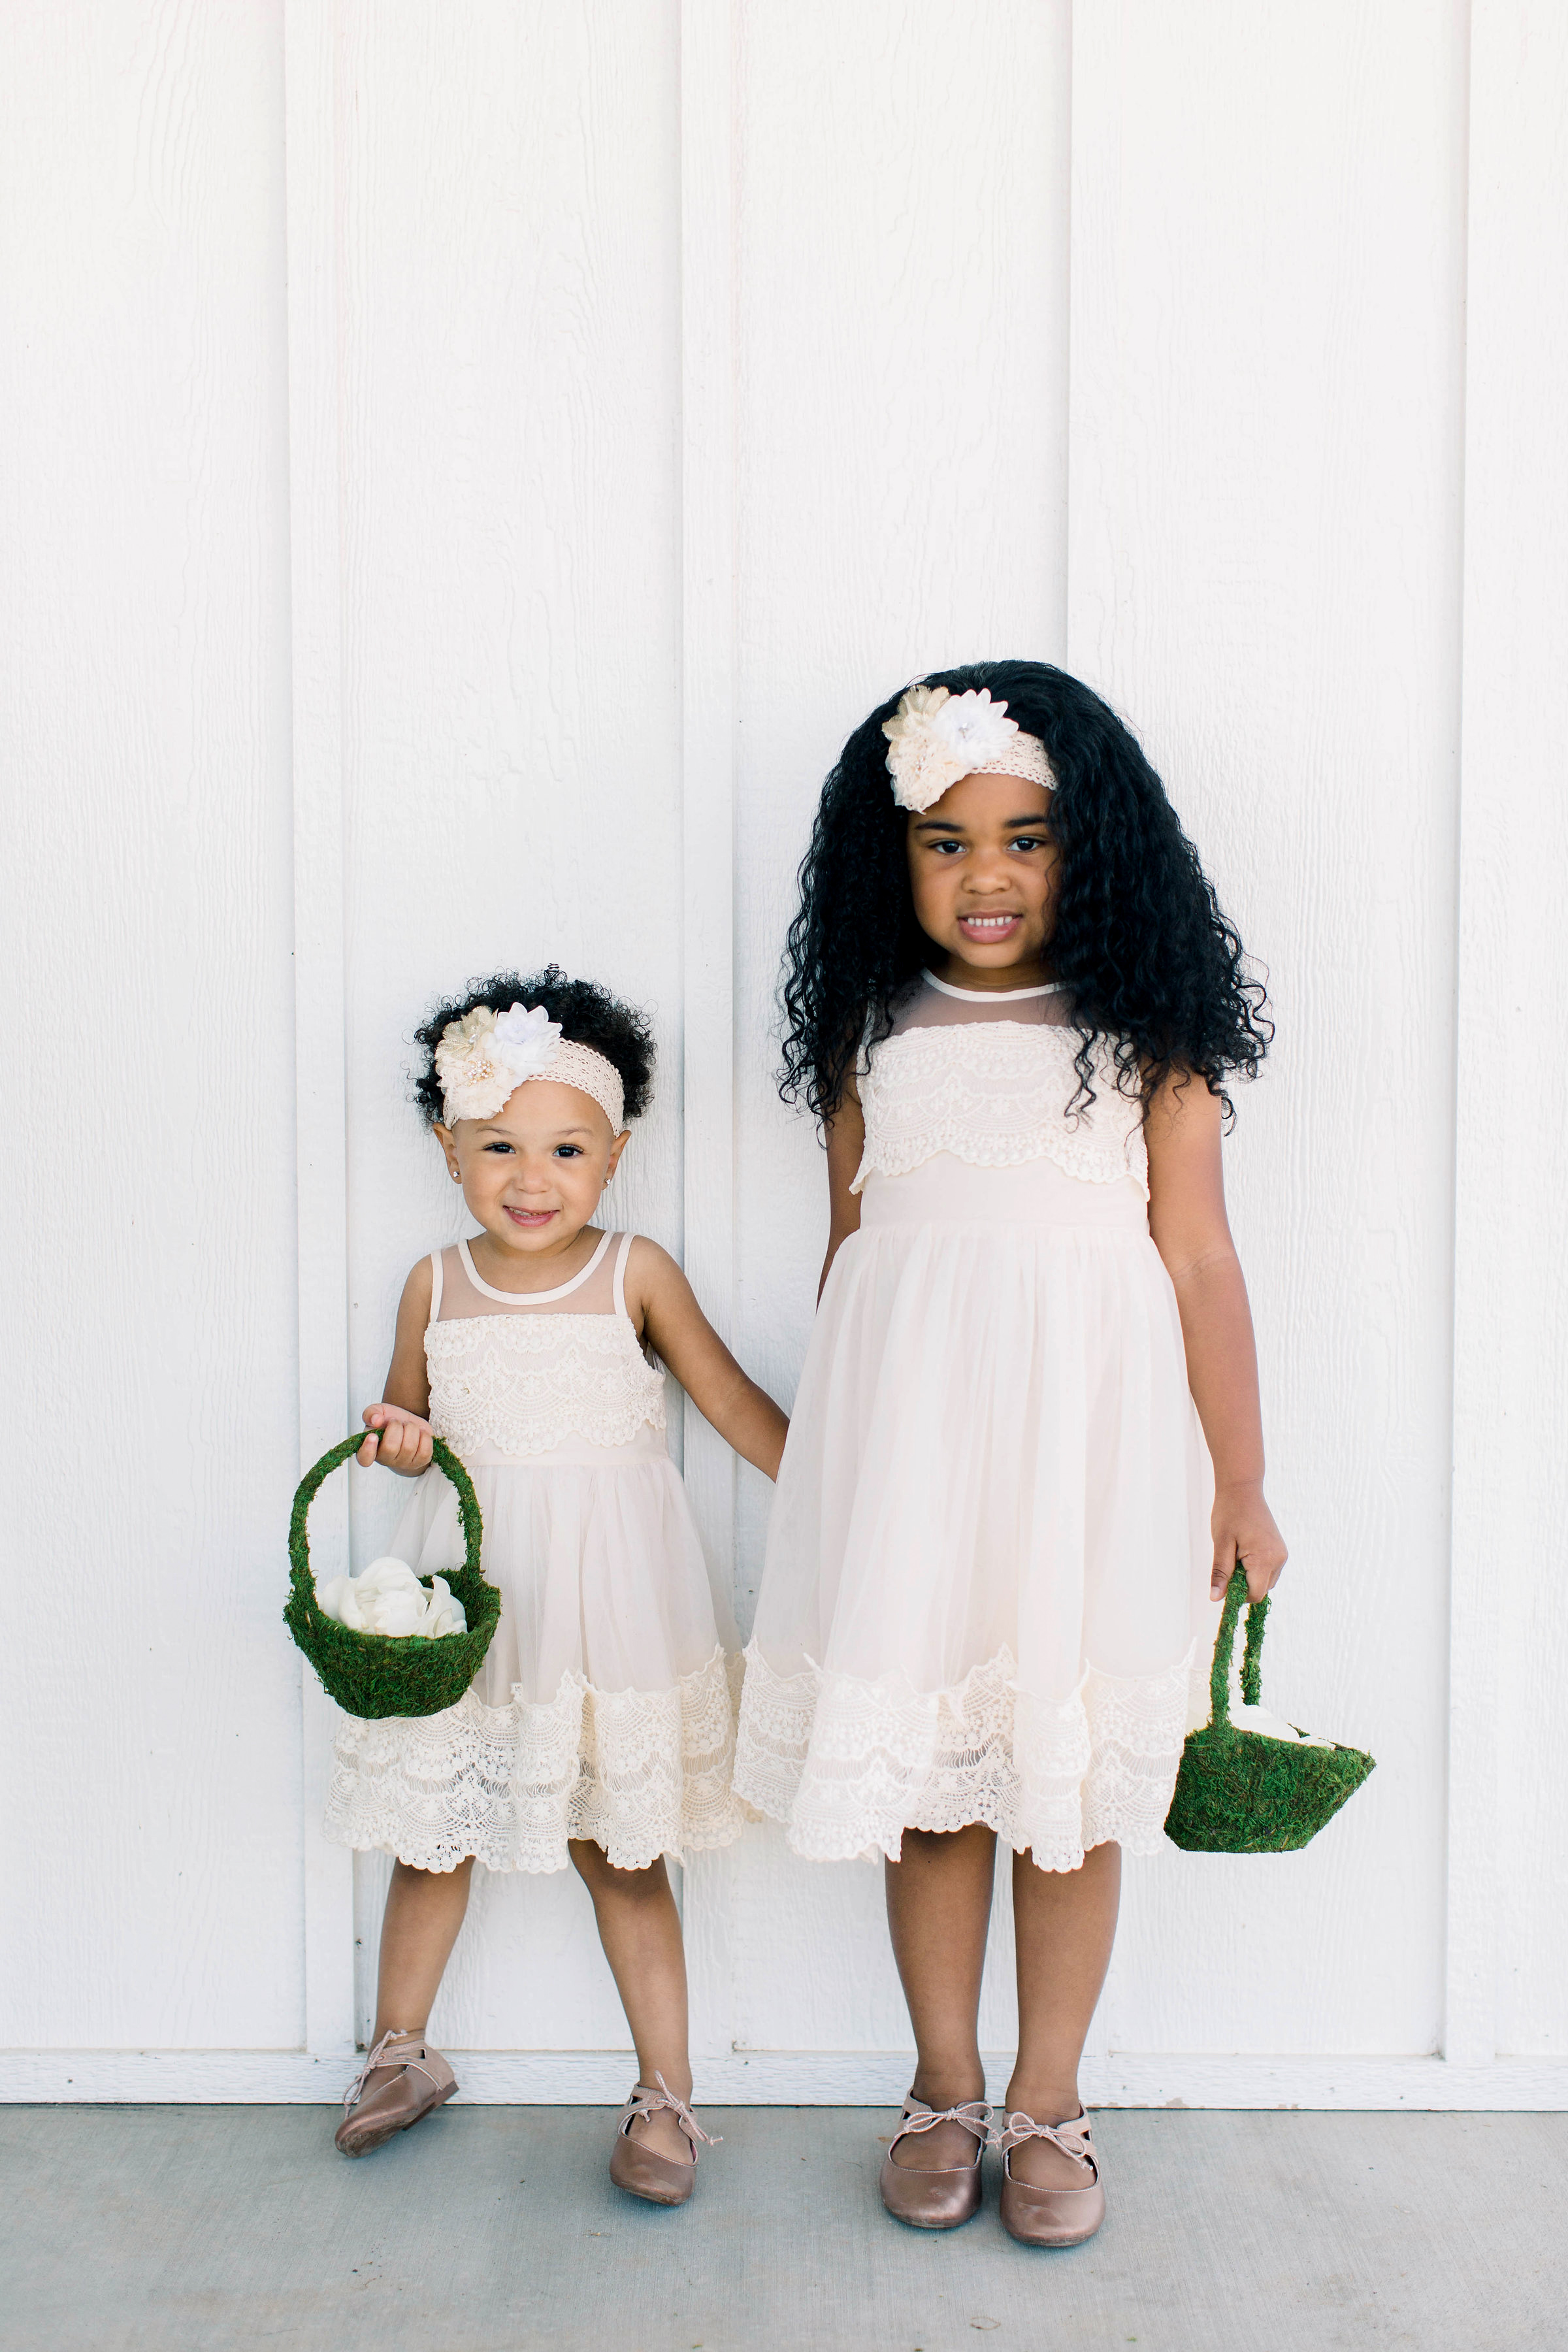 wedding flower girls carrying green baskets